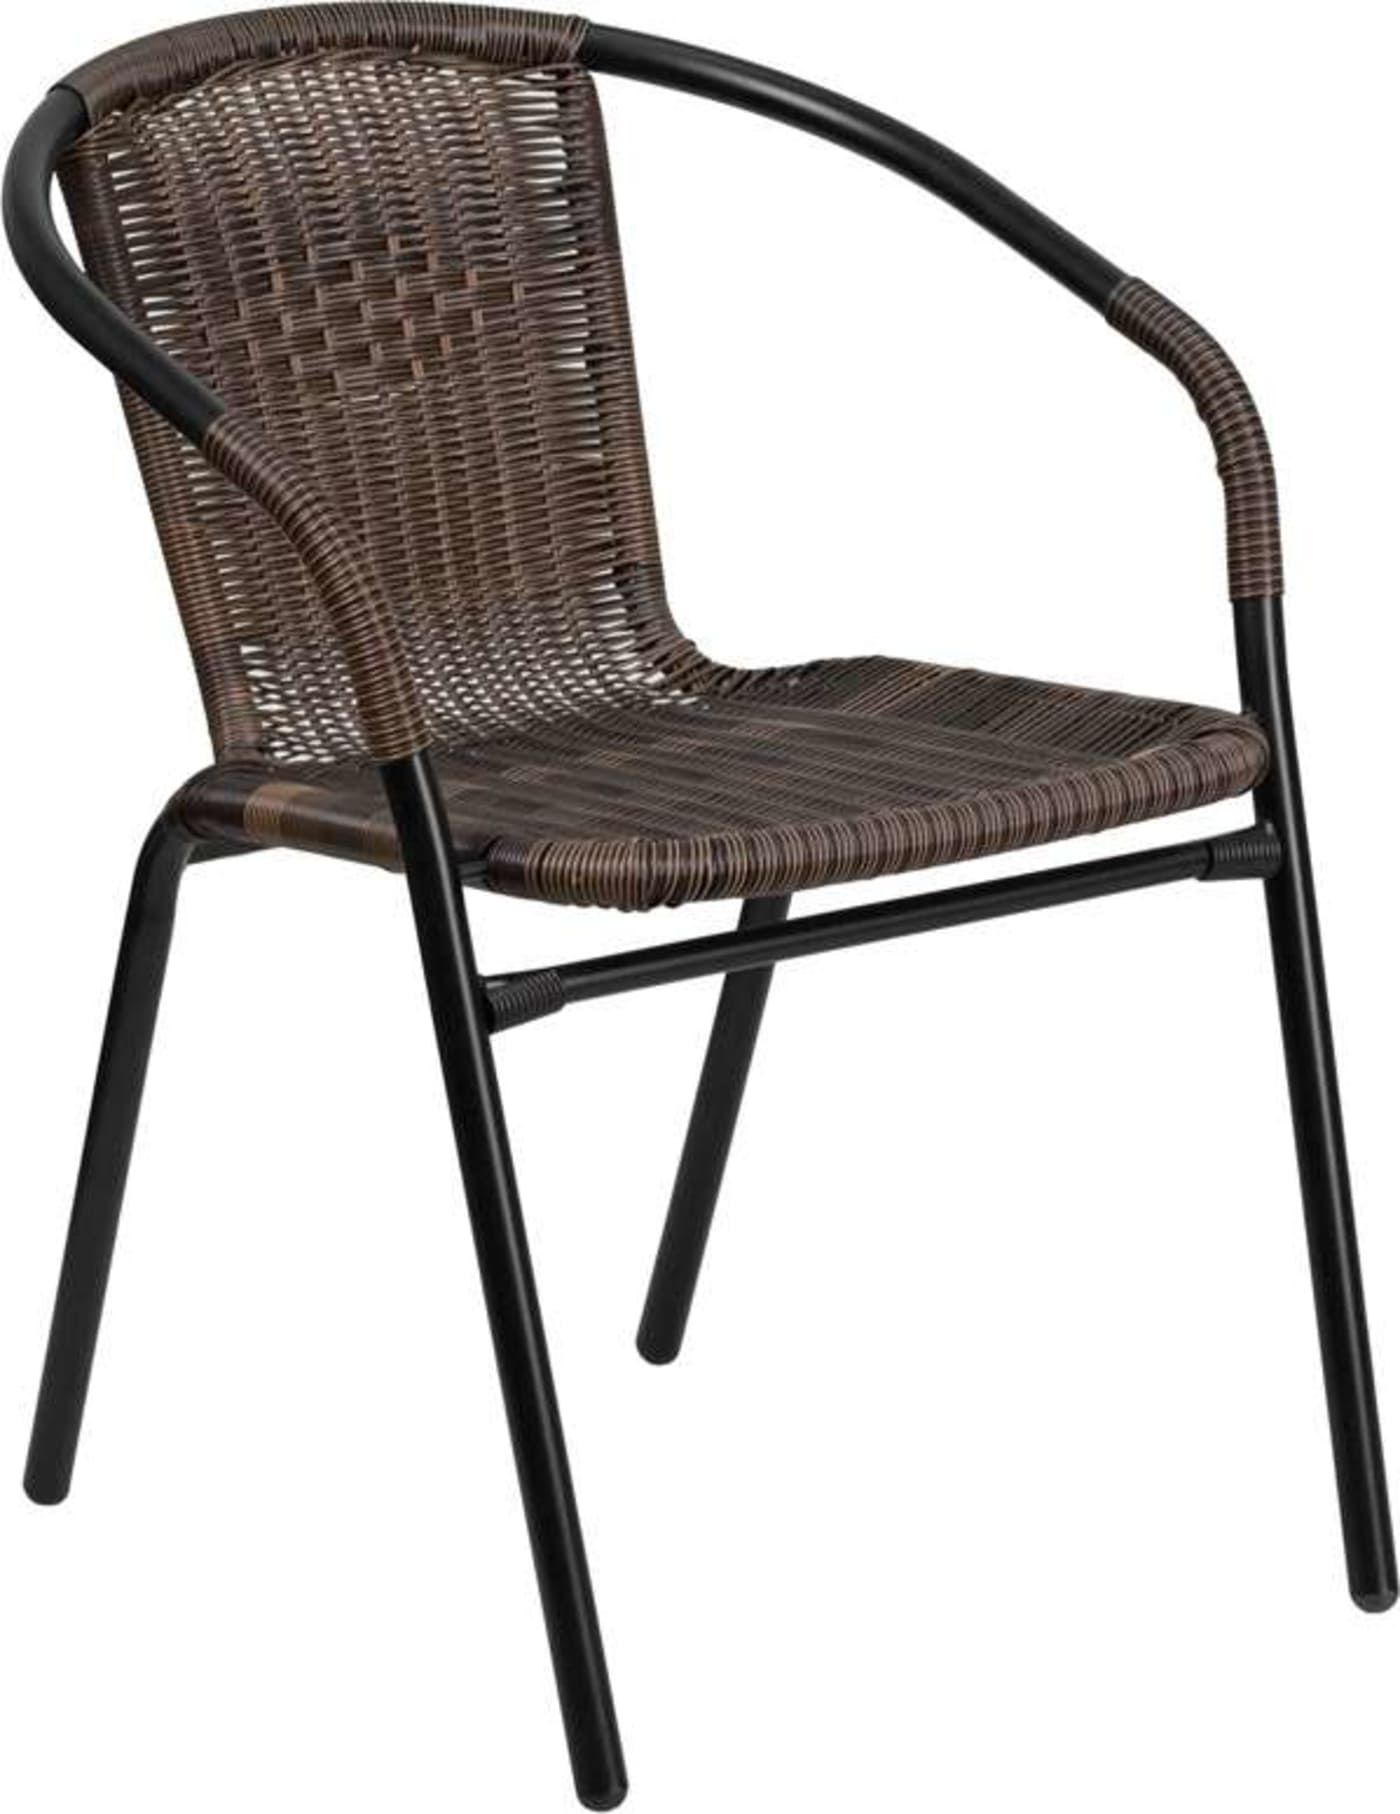 Fla Tlh 037 Dk Bn Gg Outdoor Stacking Chairs Indoor Outdoor Chair Chair